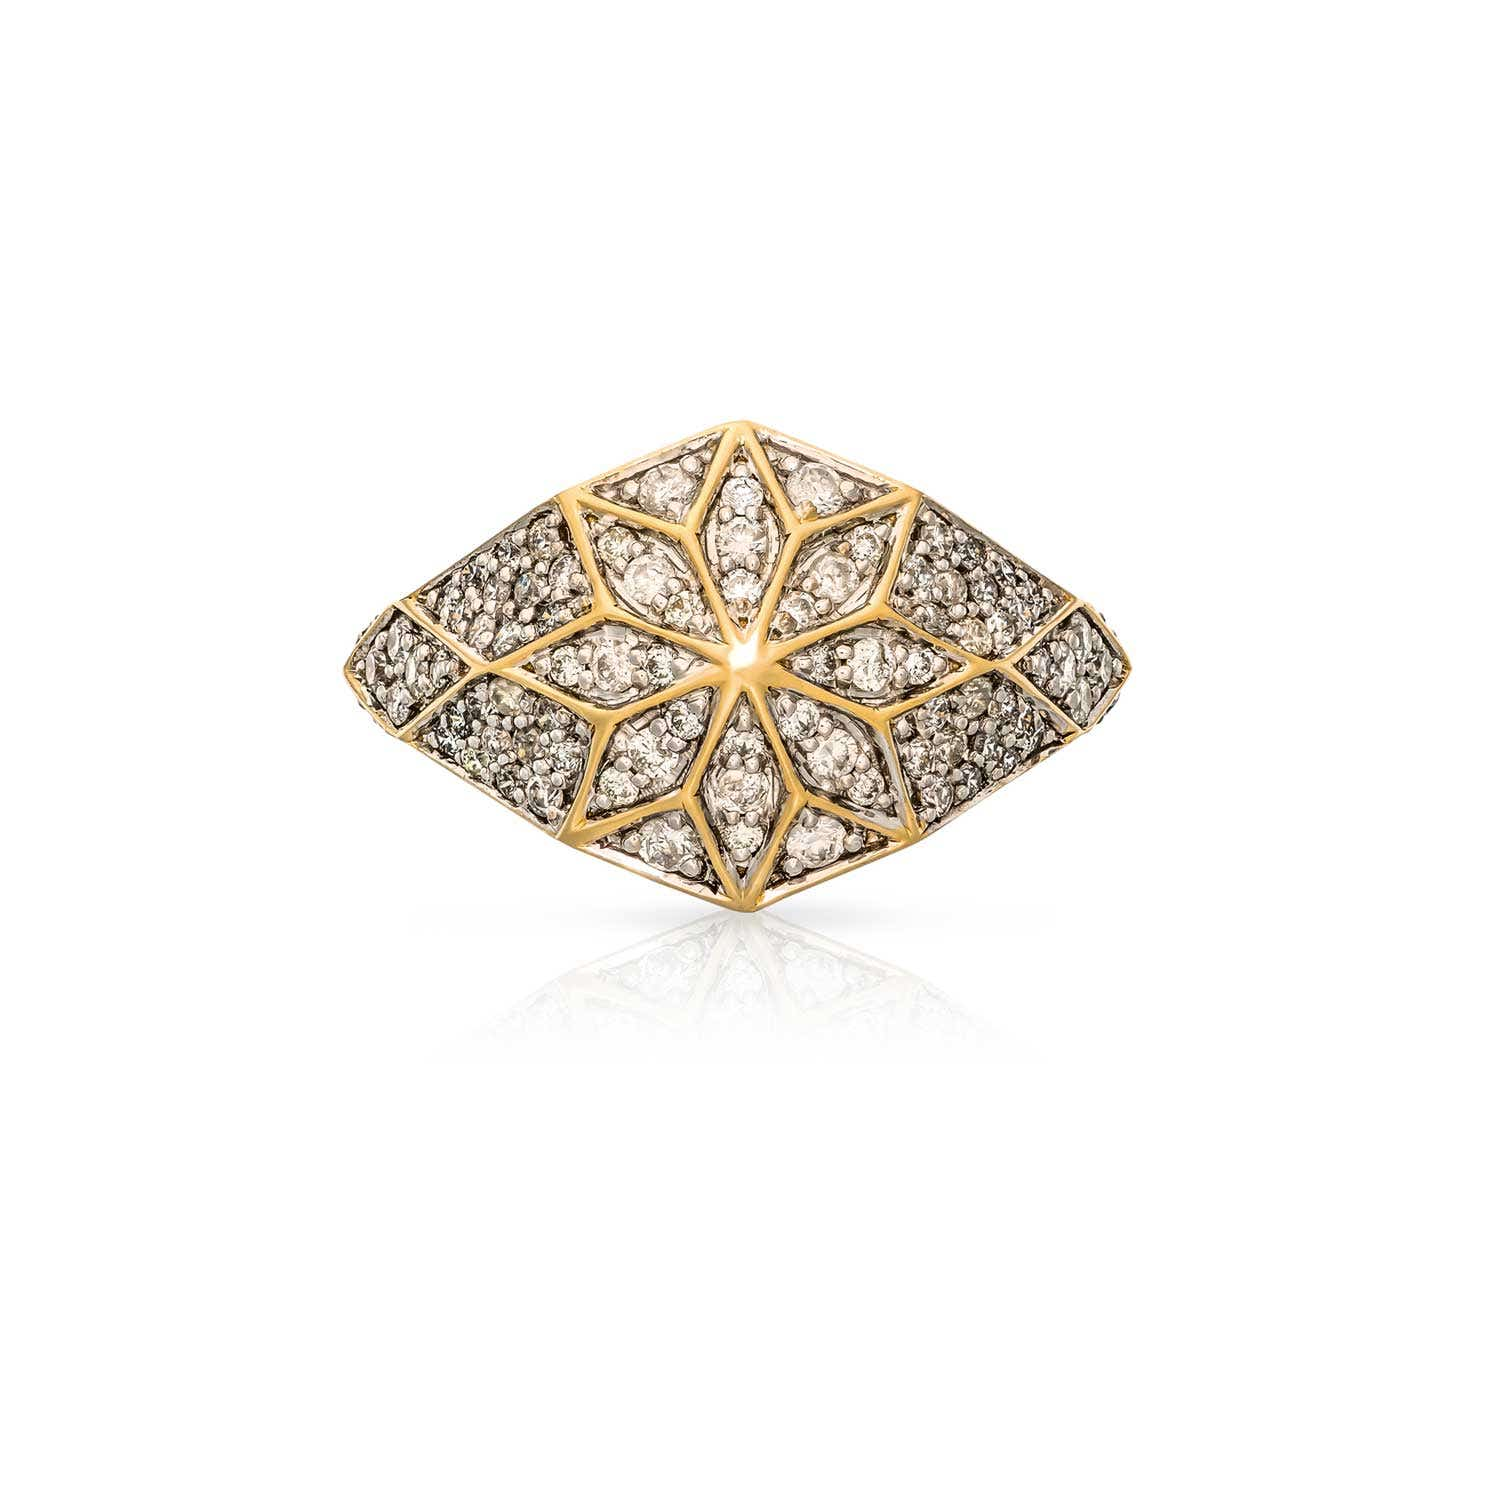 Venus Star ring. 9k Yellow Gold / Diamond